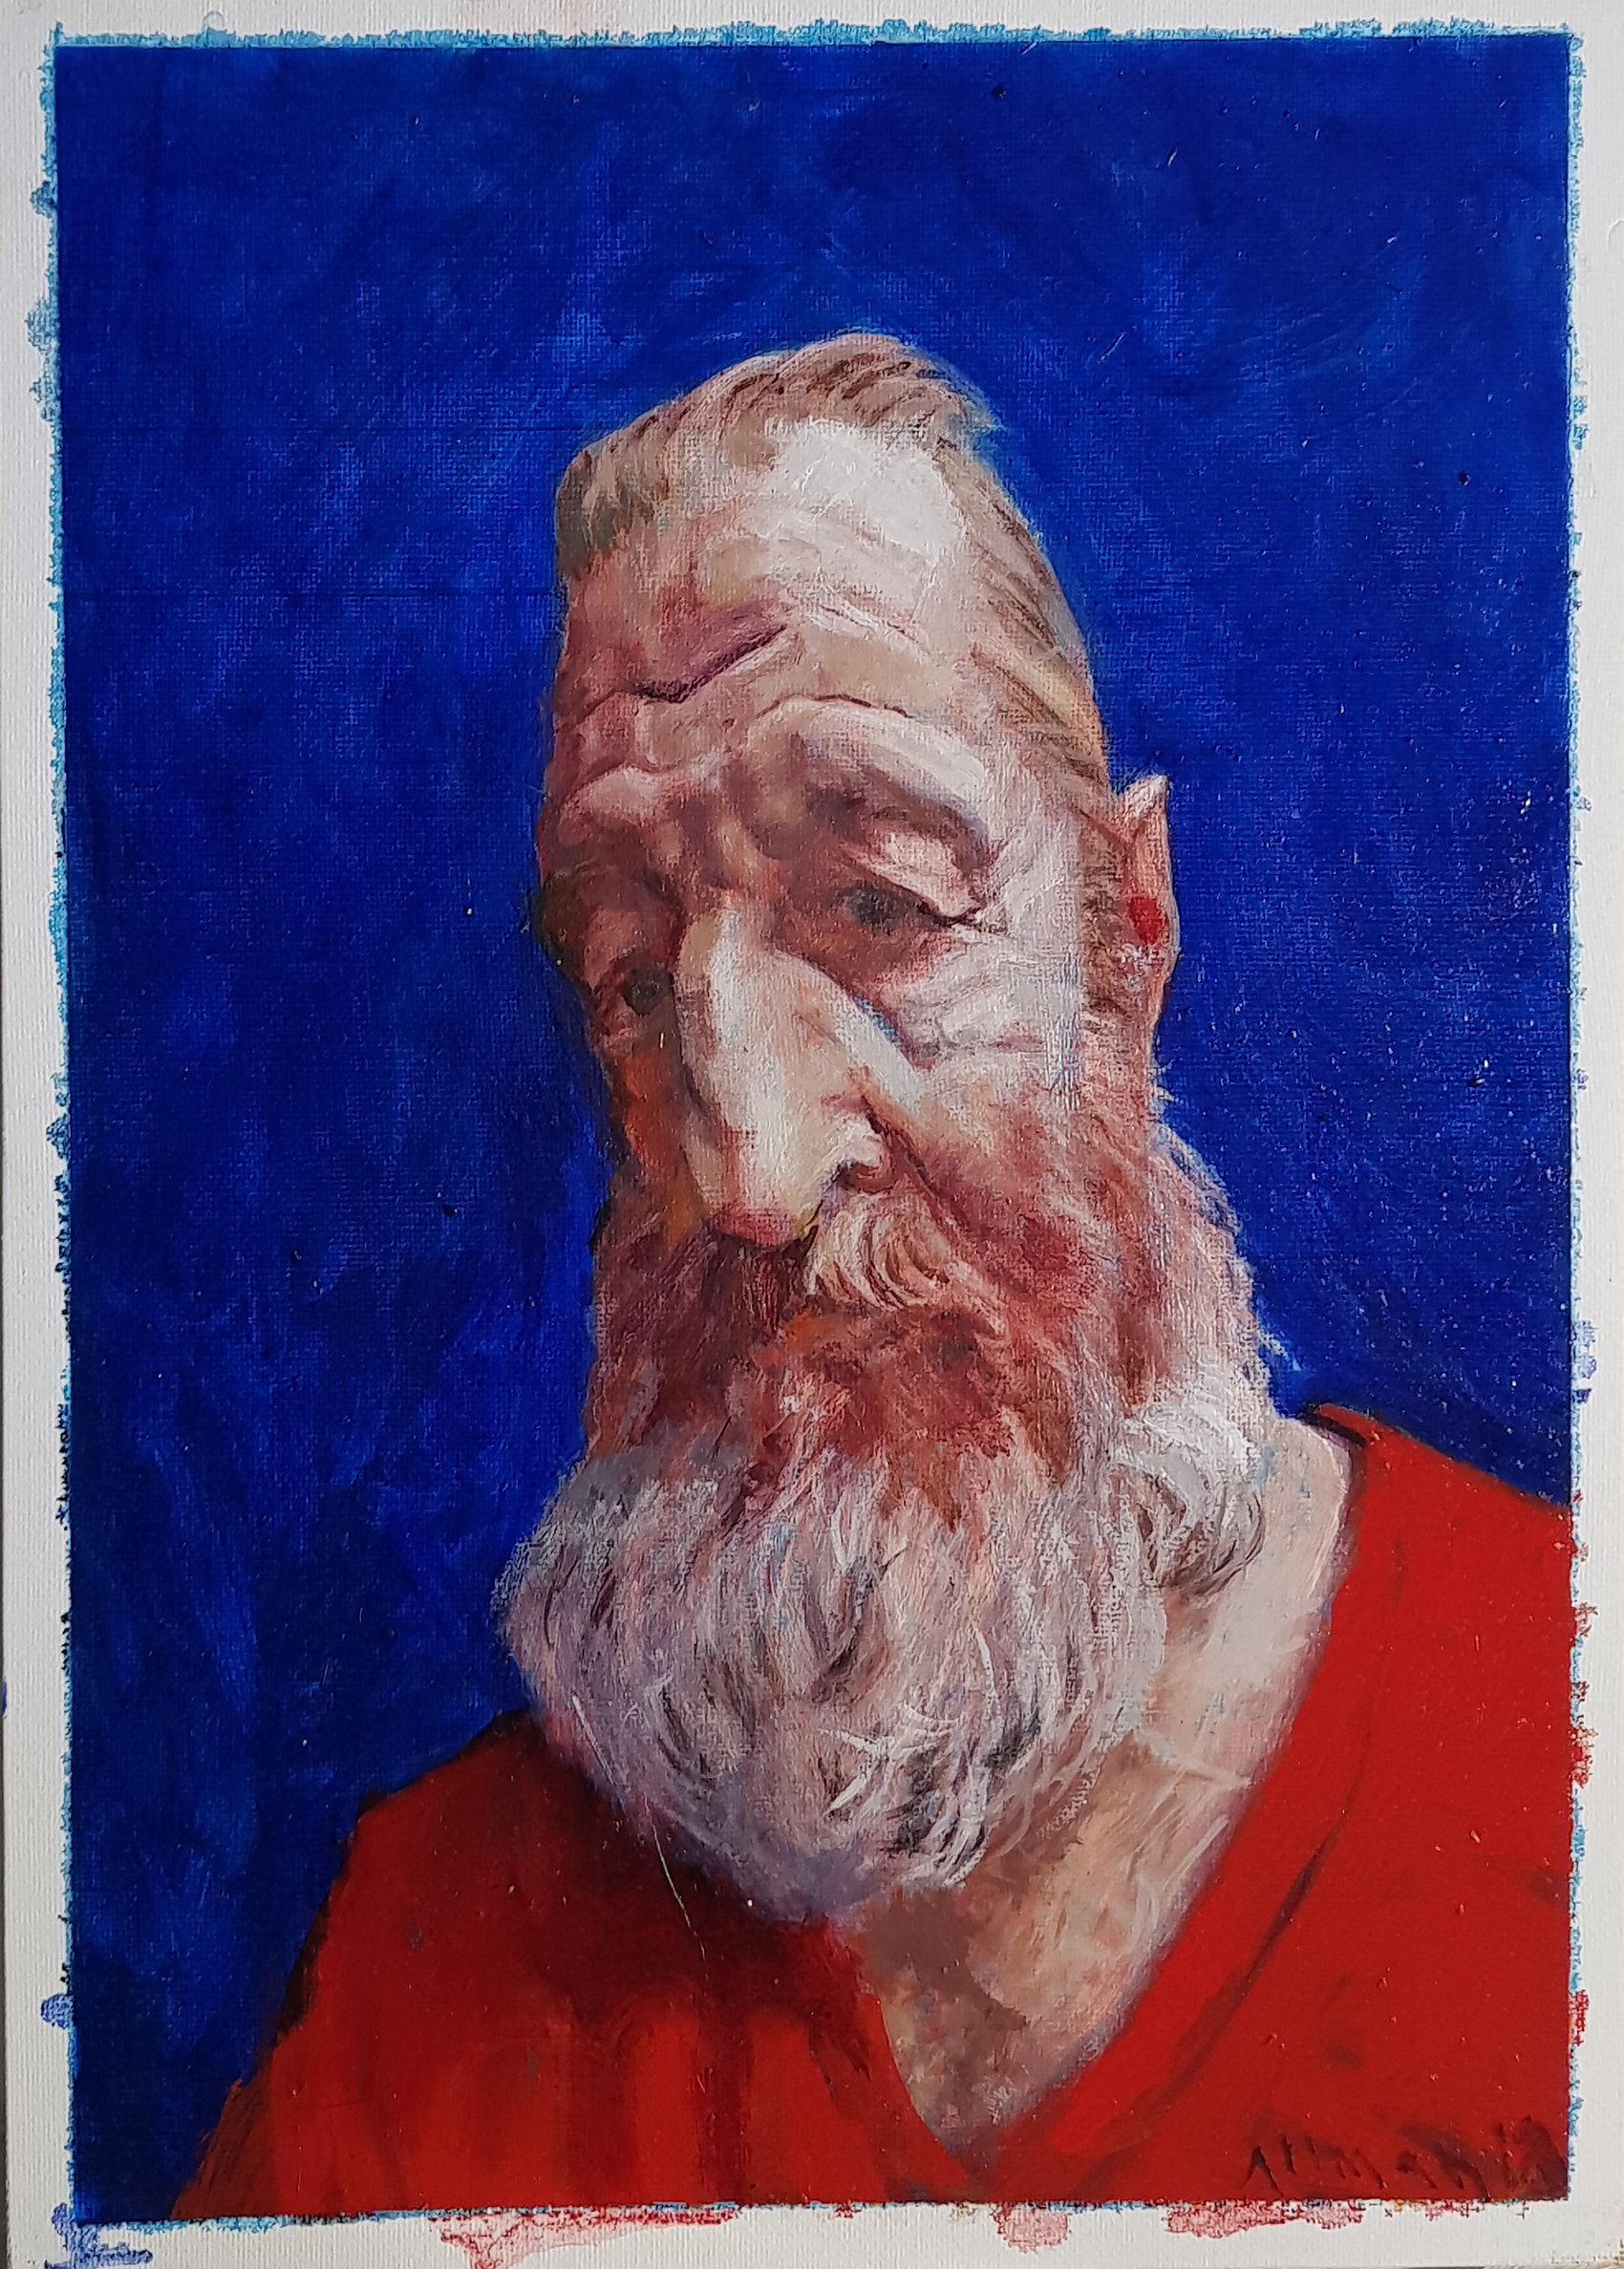 John Alman, Old Jew, Oil on canvas., Height 60cm x Width 55cm,  http://allmad-art.com